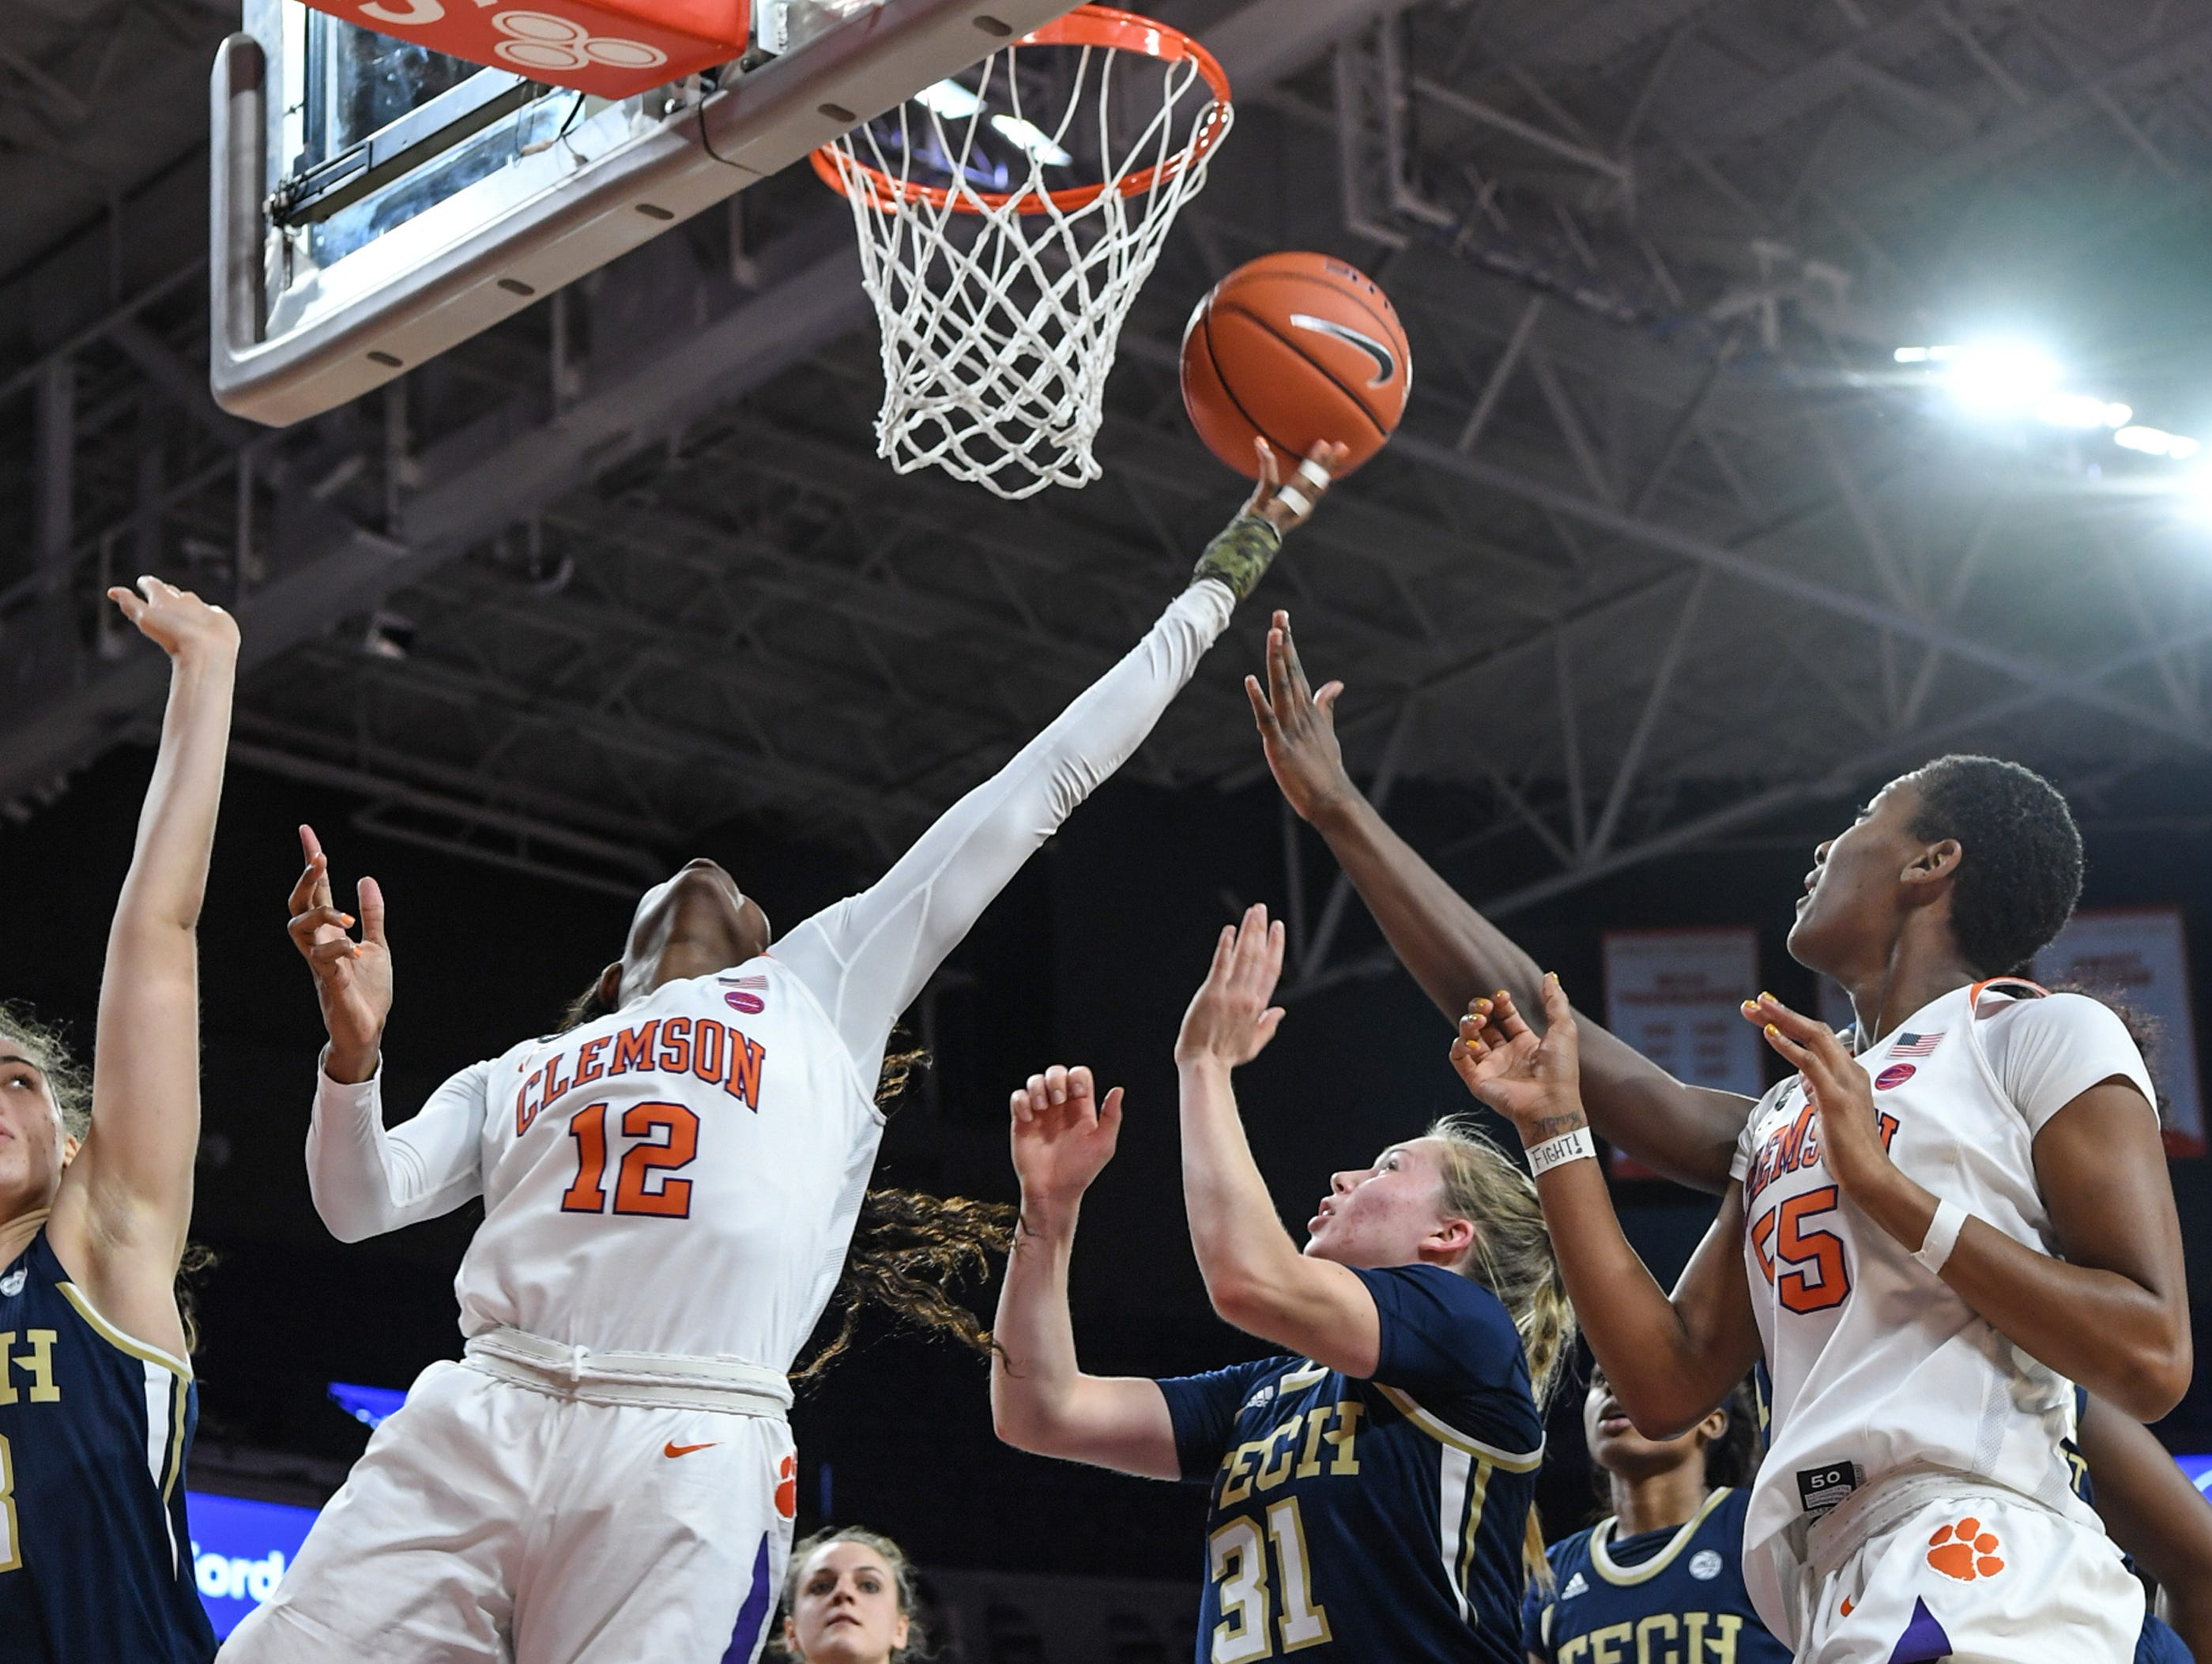 Clemson guard Aliyah Collier(12) shoots near Georgia Tech guard Lotta-Maj Lahtinen(31) during the fourth quarter at Littlejohn Coliseum in Clemson Thursday, January 17, 2019.